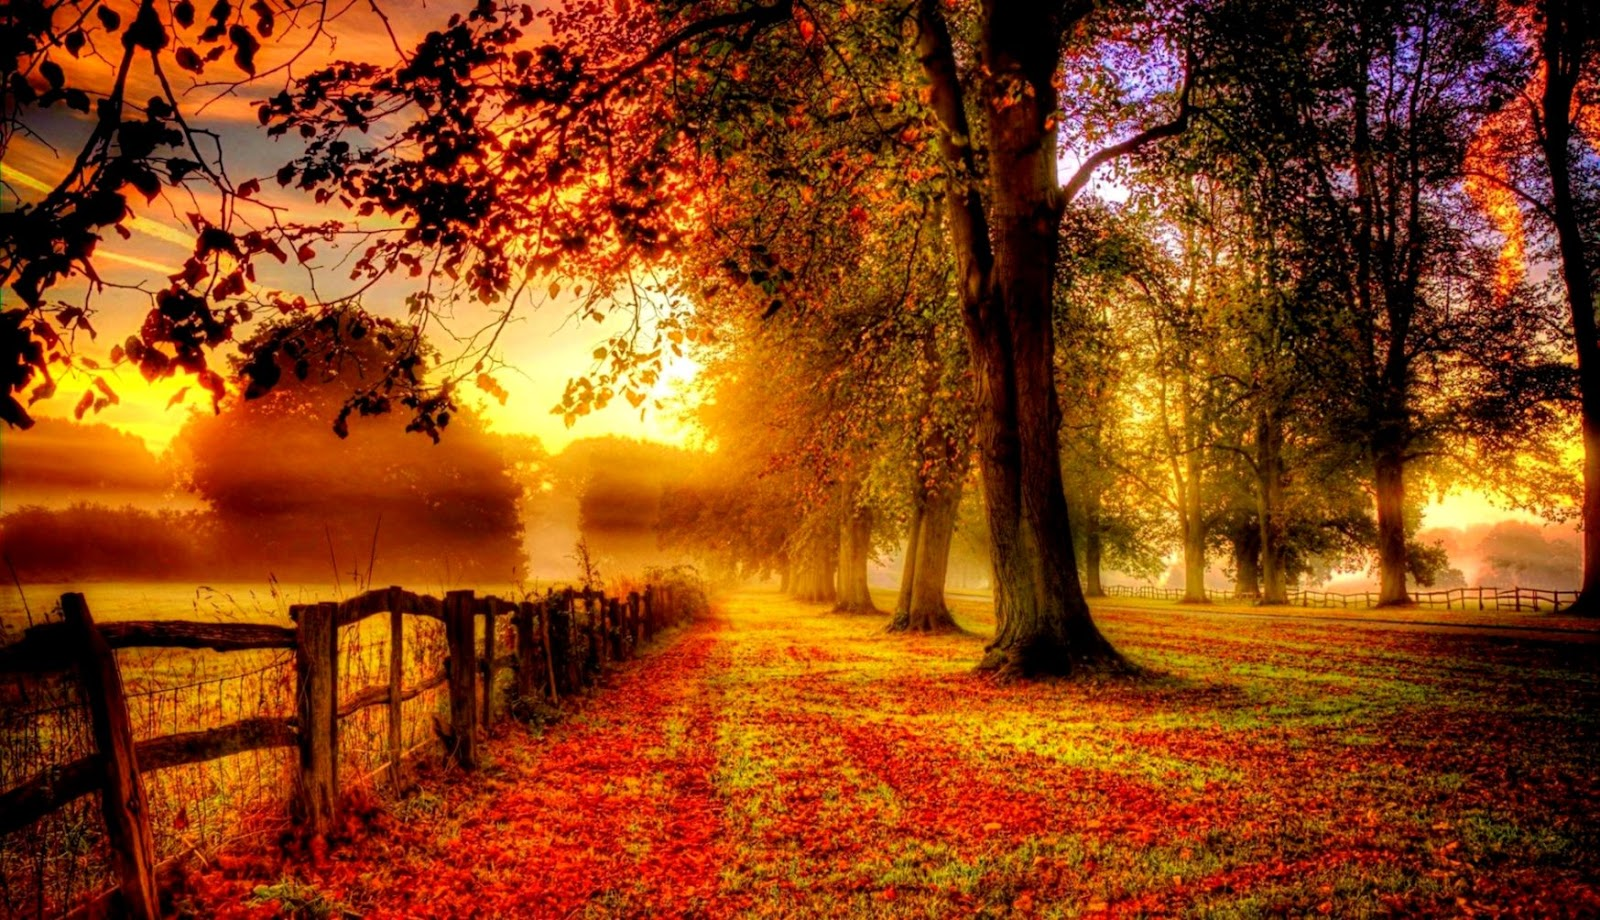 Autumn Backgrounds Wallpaper Wallpapers Abstract